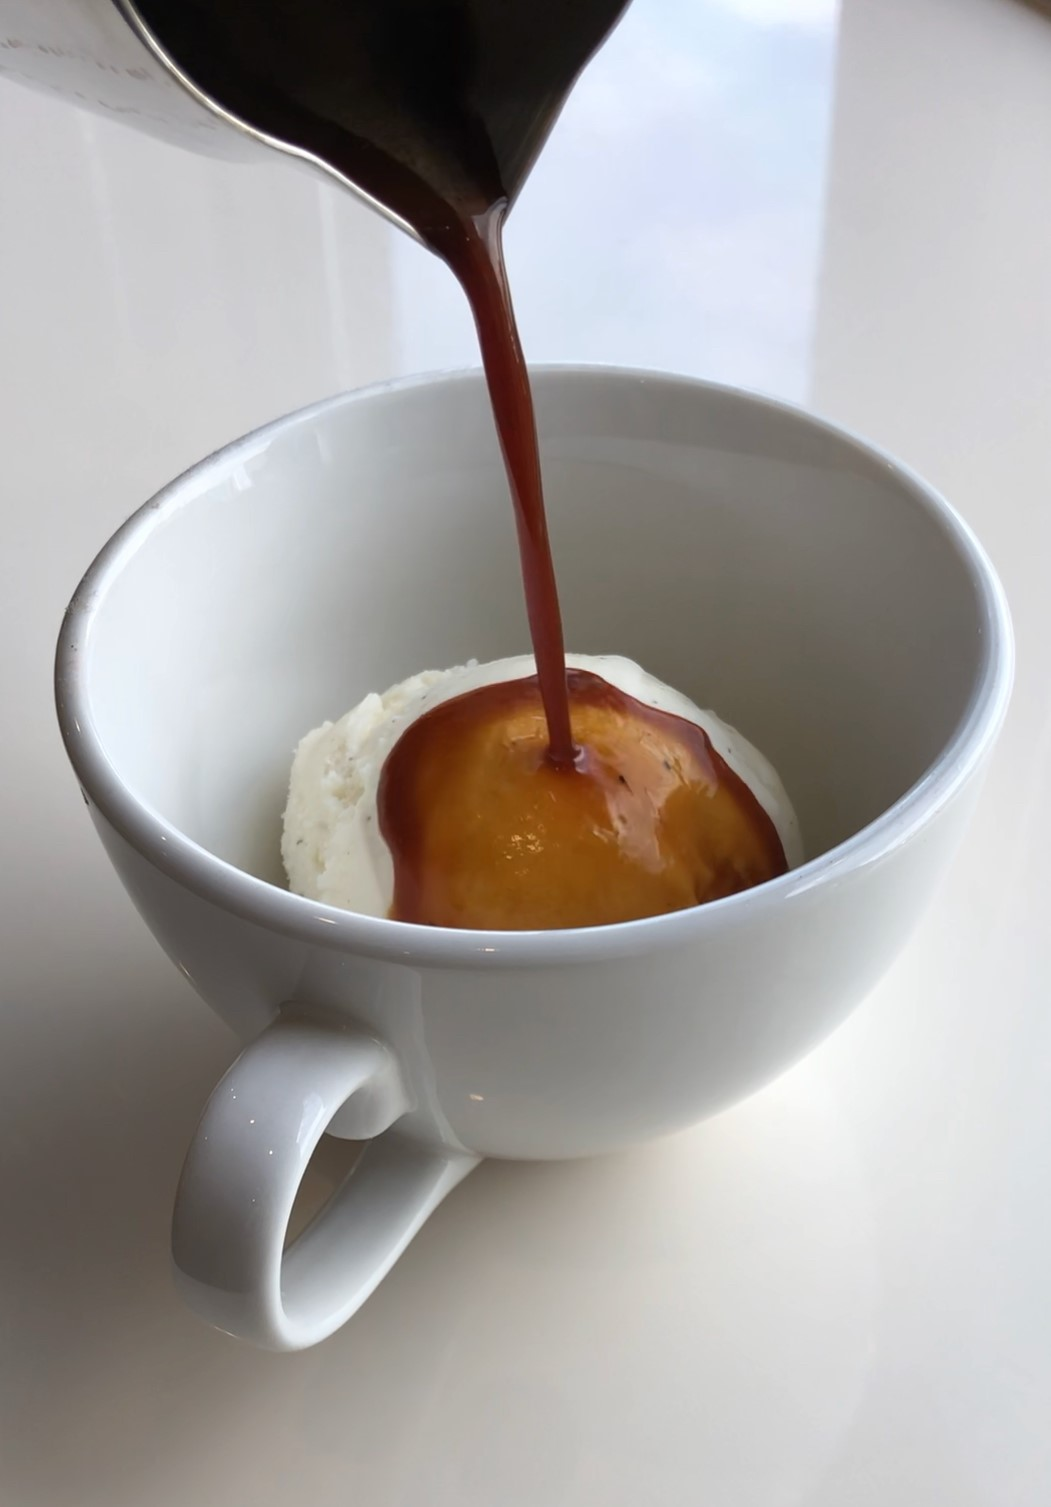 Affogato - The origin of the word Affogato is Italian and literally means